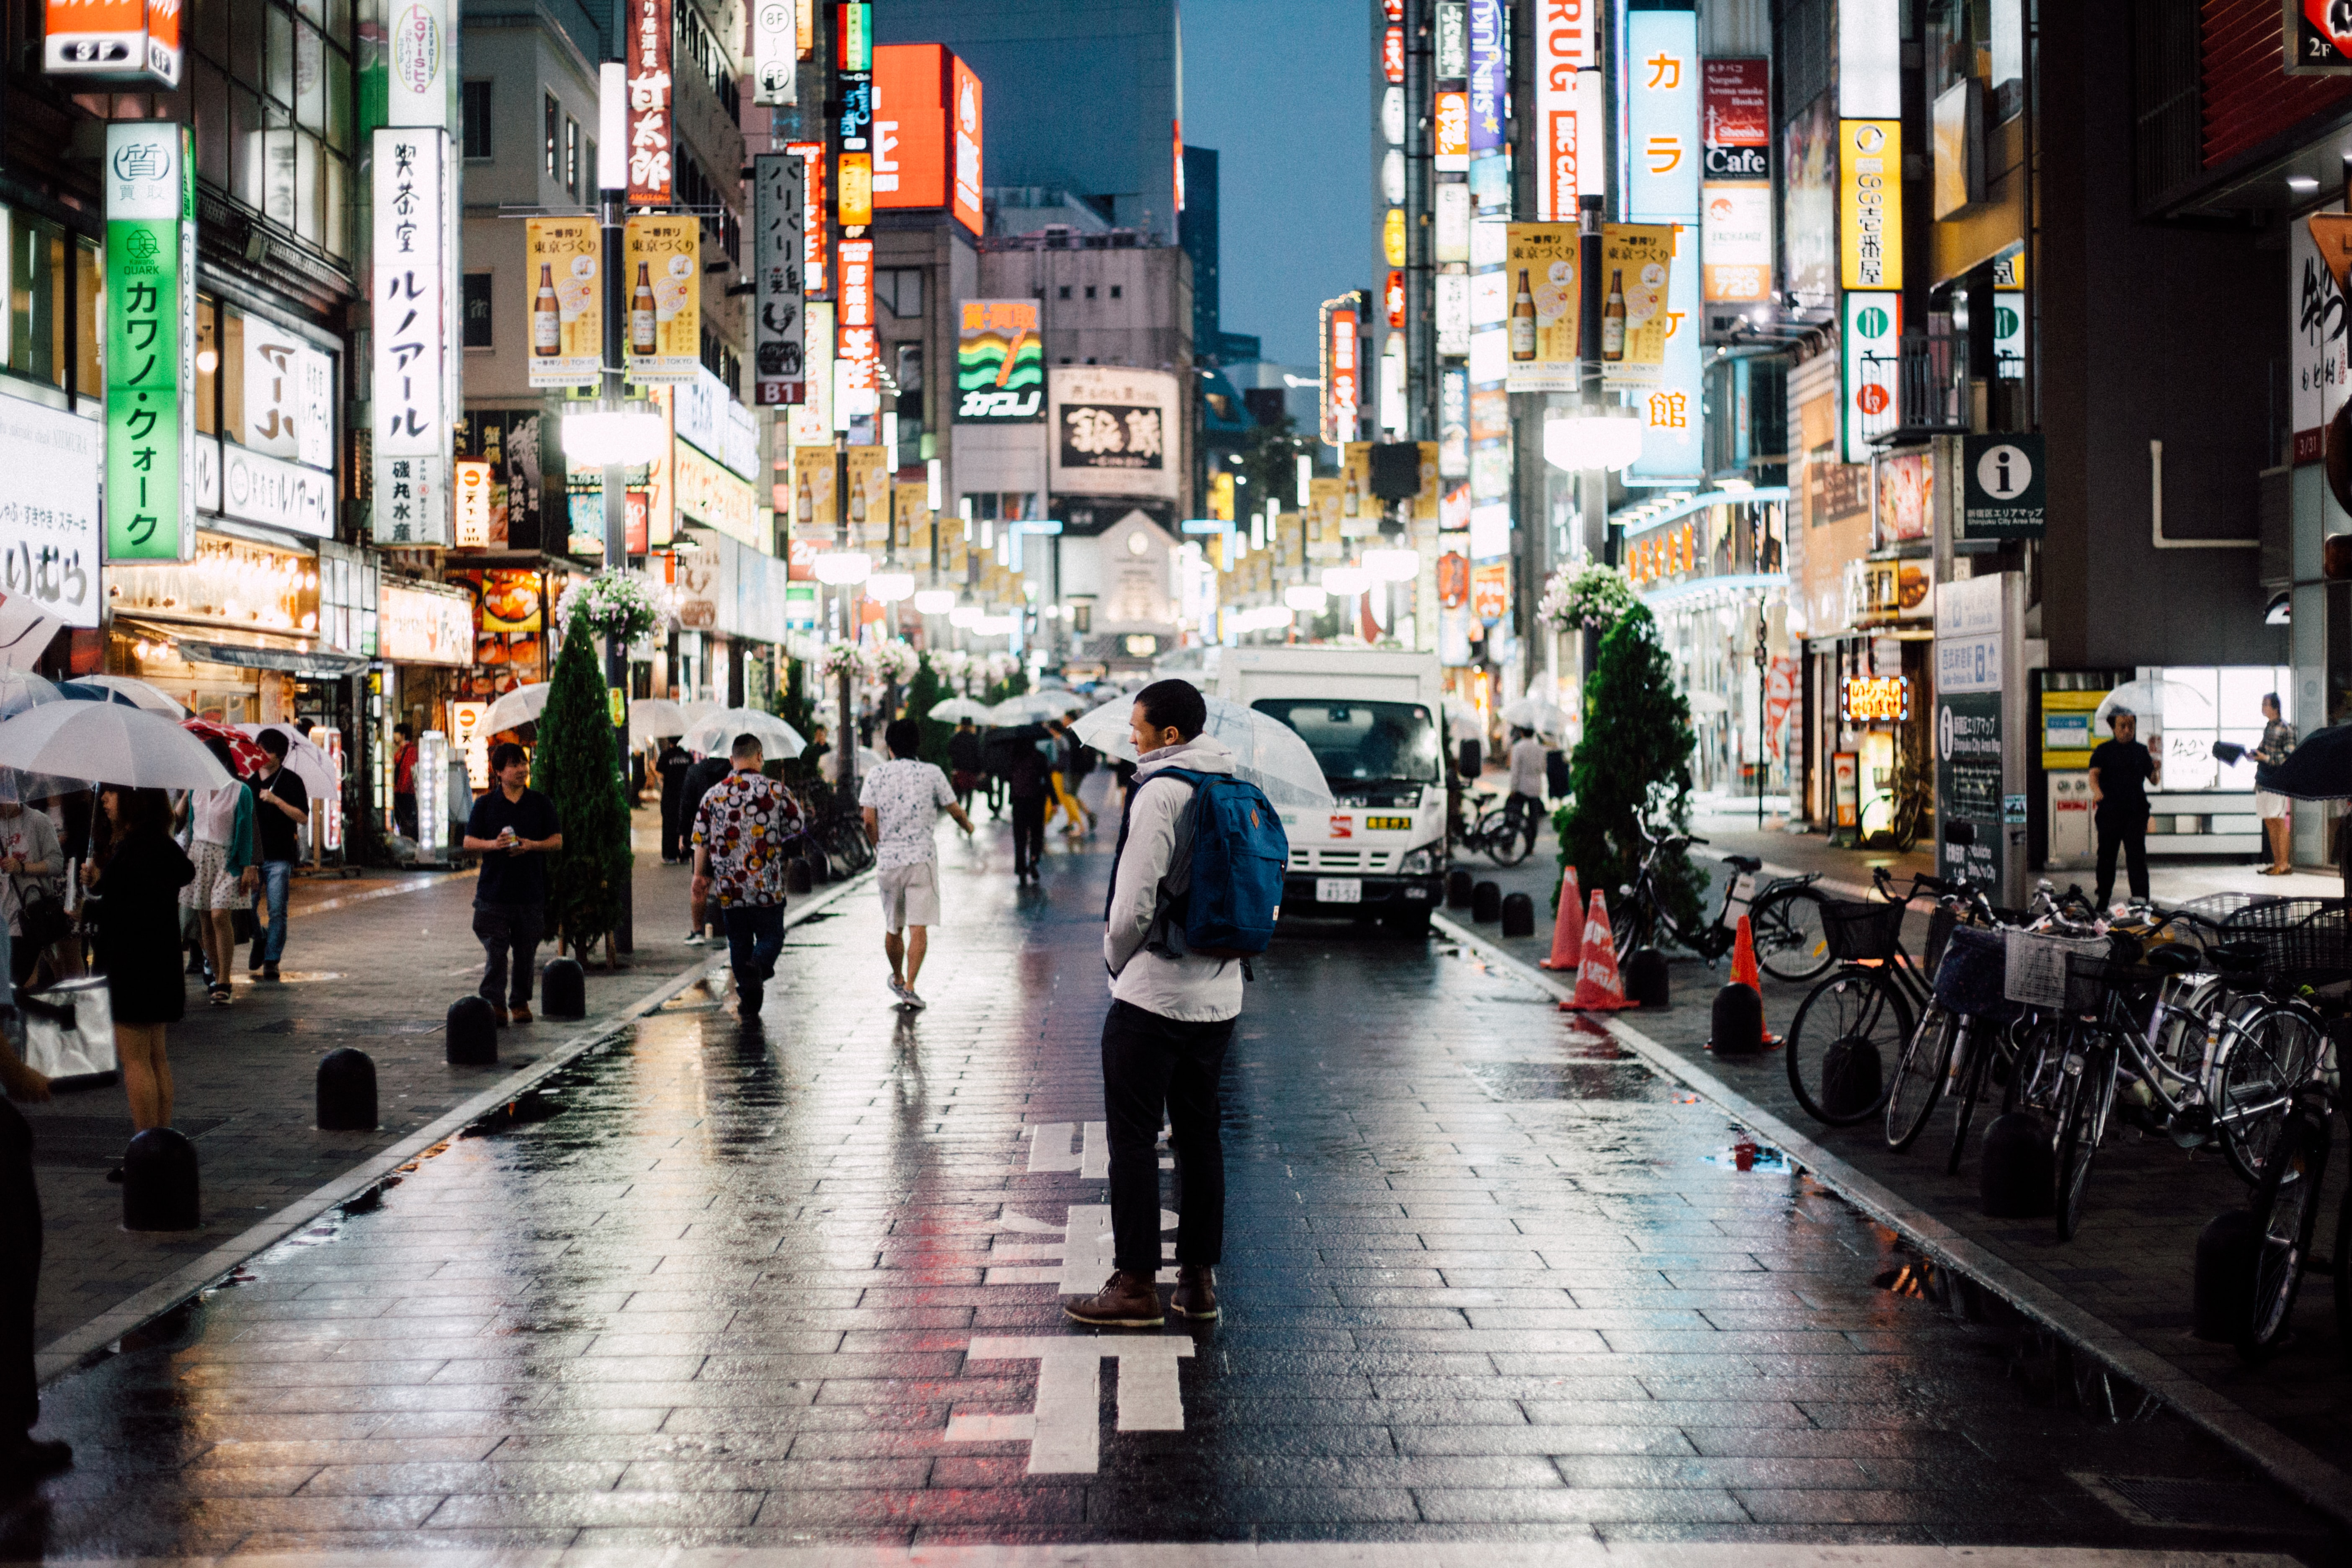 man with backpack standing on street during night time